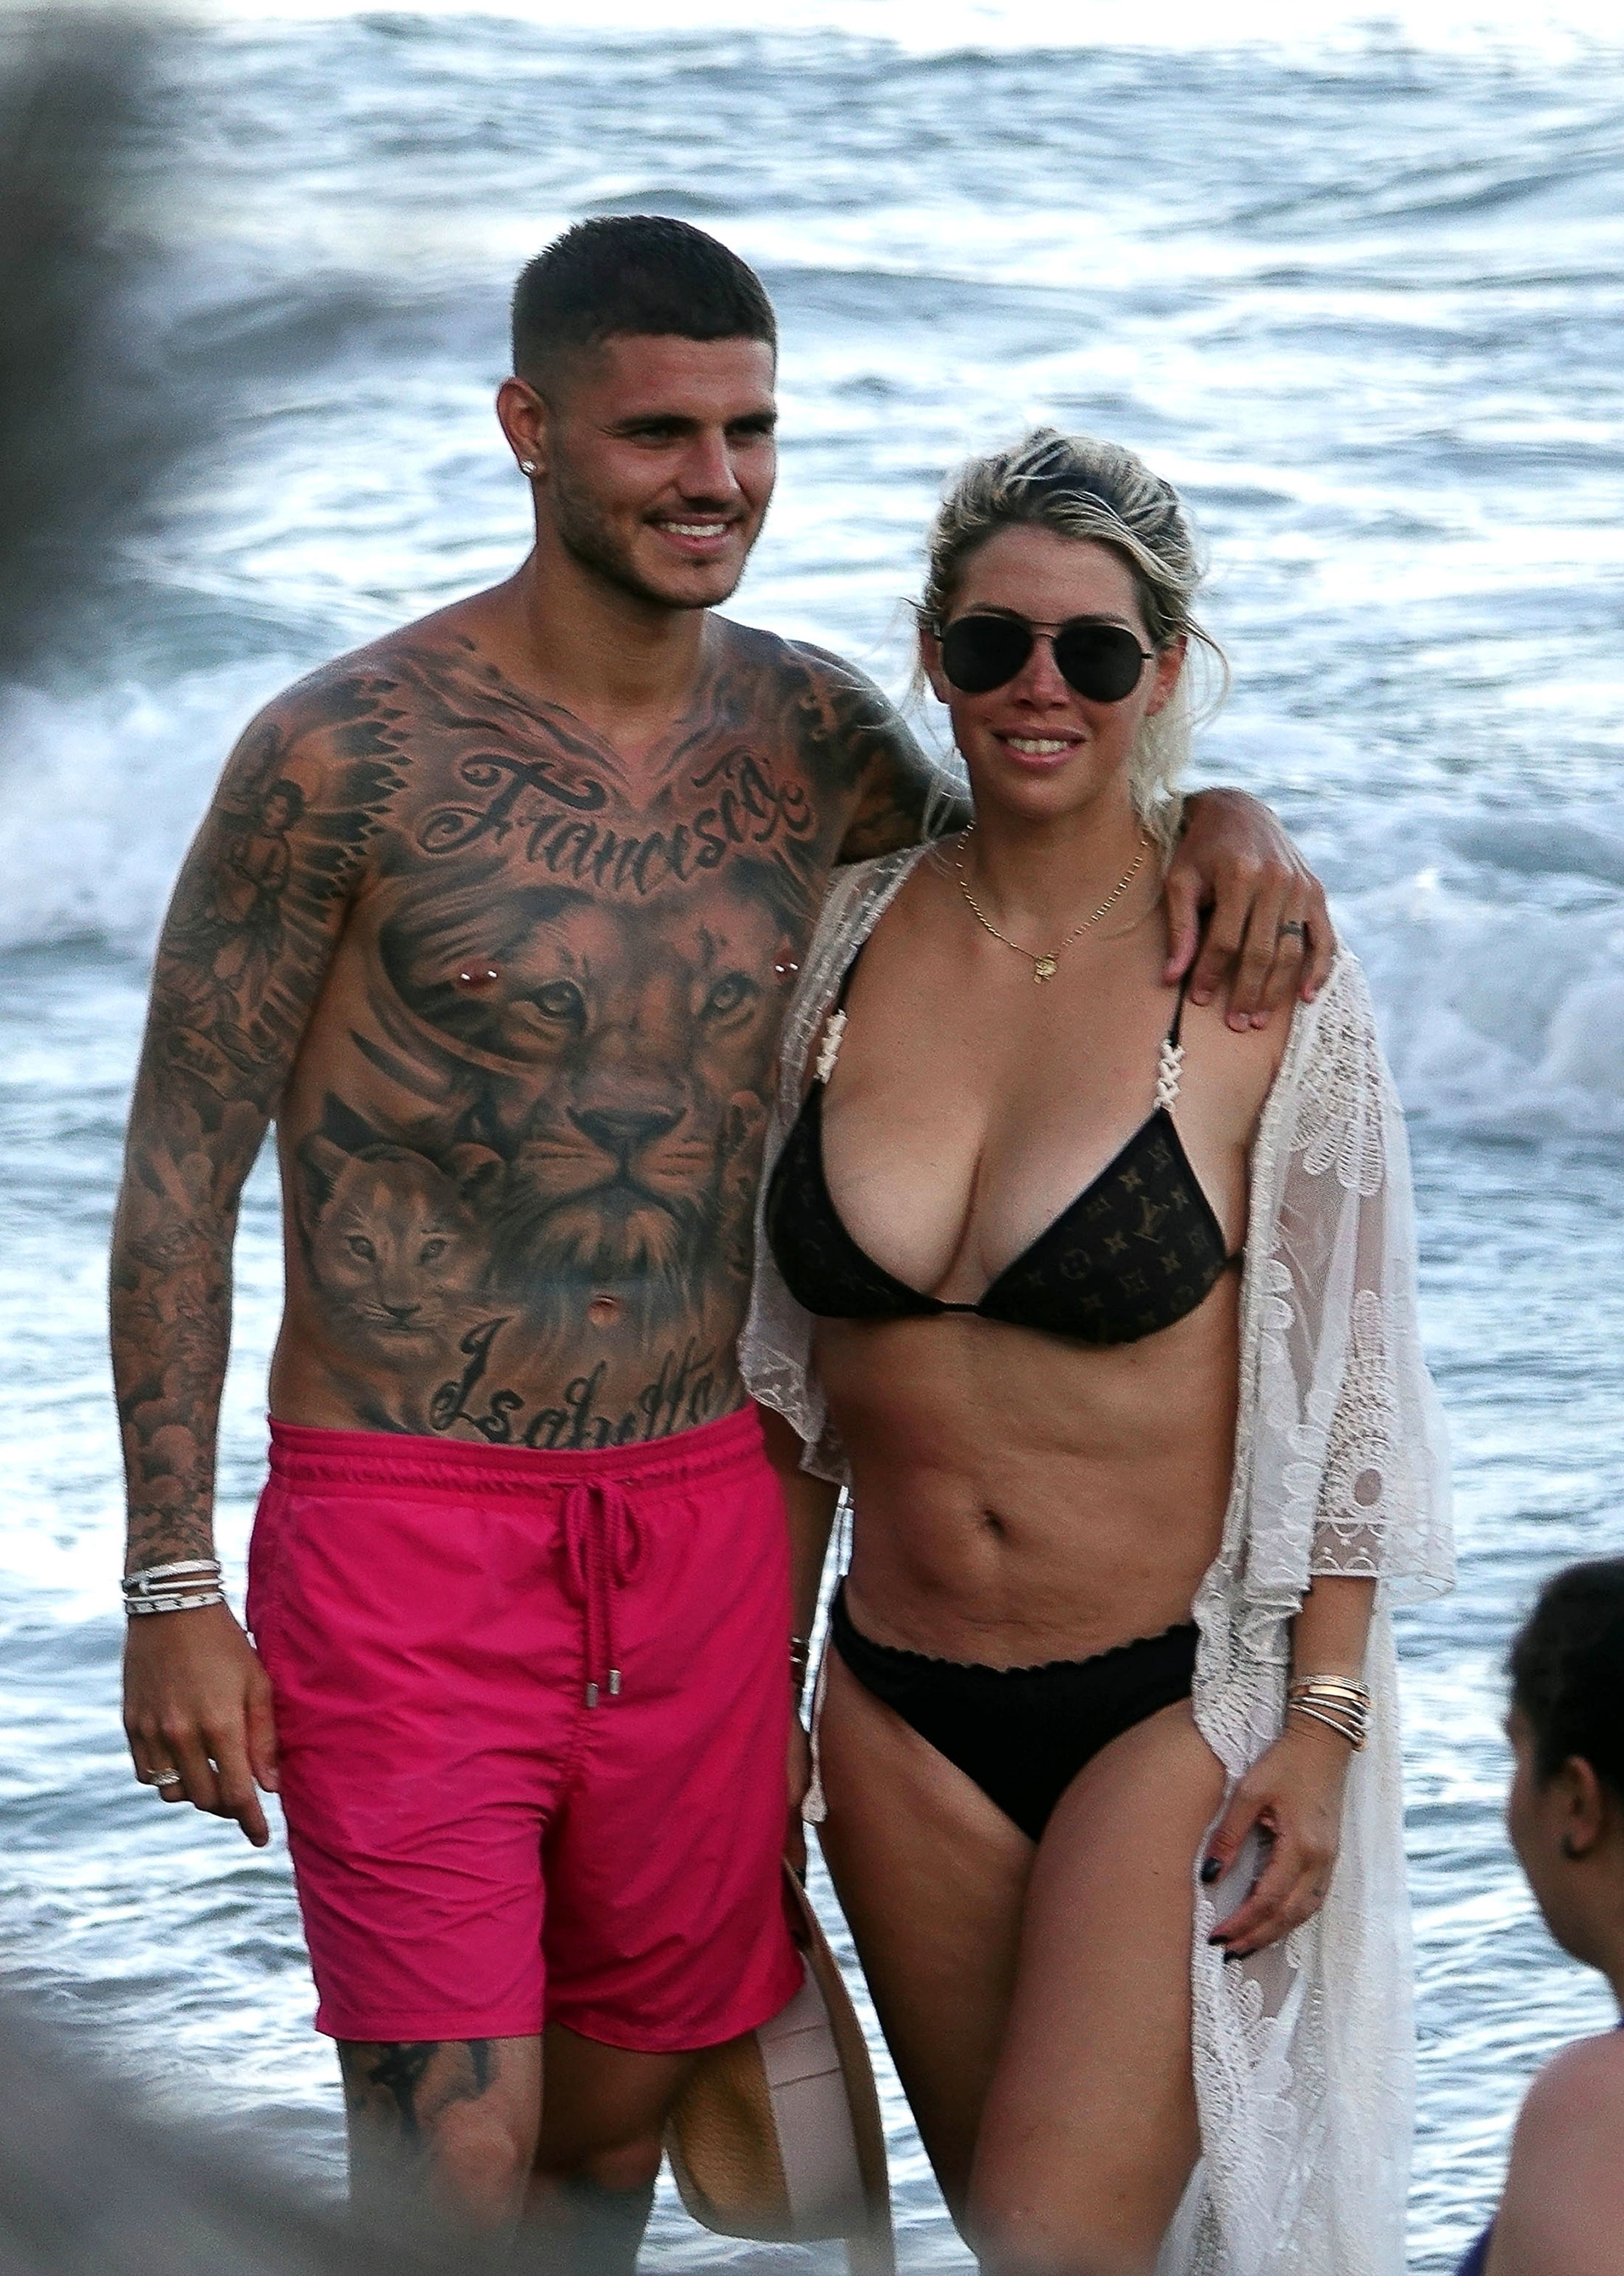 El jugador del Inter de Milán y su esposa están disfrutando de Ibiza, España (Photo © 2018 Backgrid UK/The Grosby Group / Spain: Lagencia Grosby)